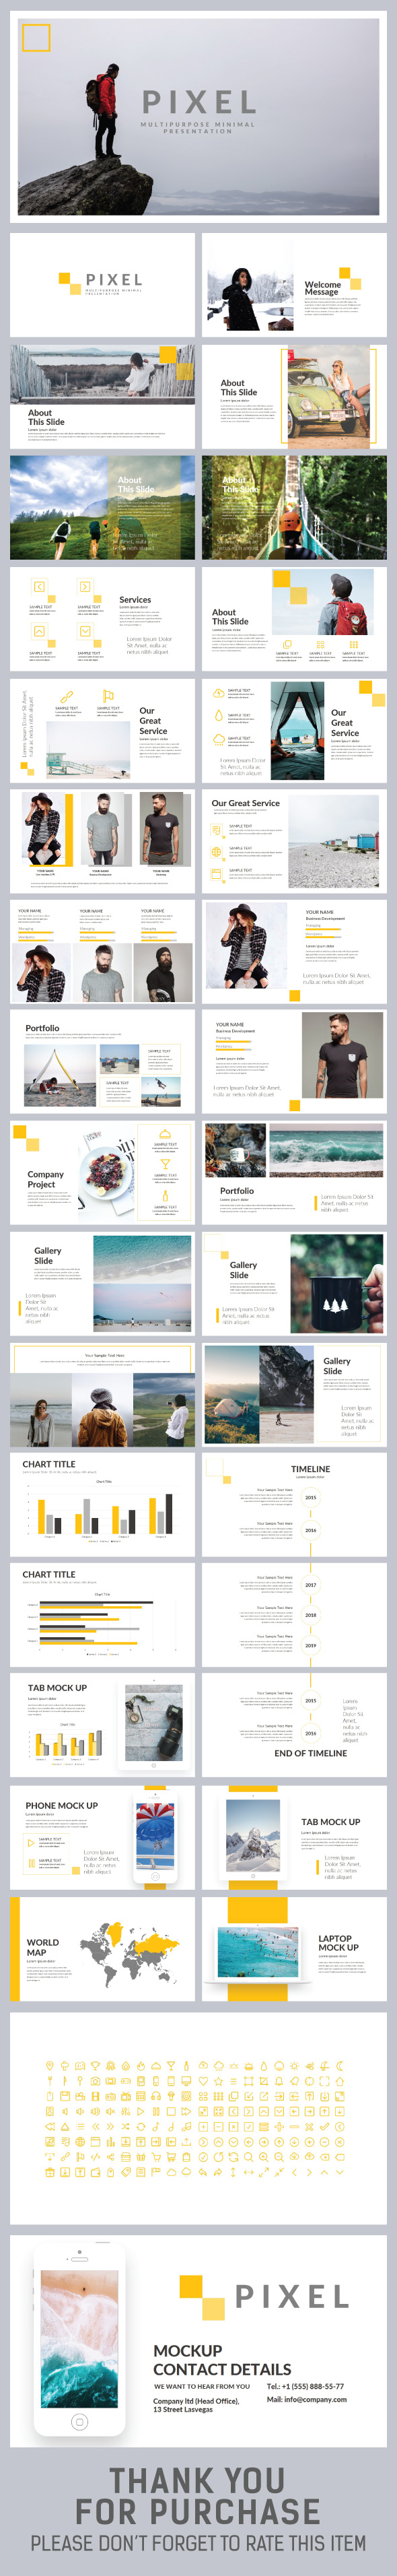 PIXEL Presentation Template - Creative PowerPoint Templates